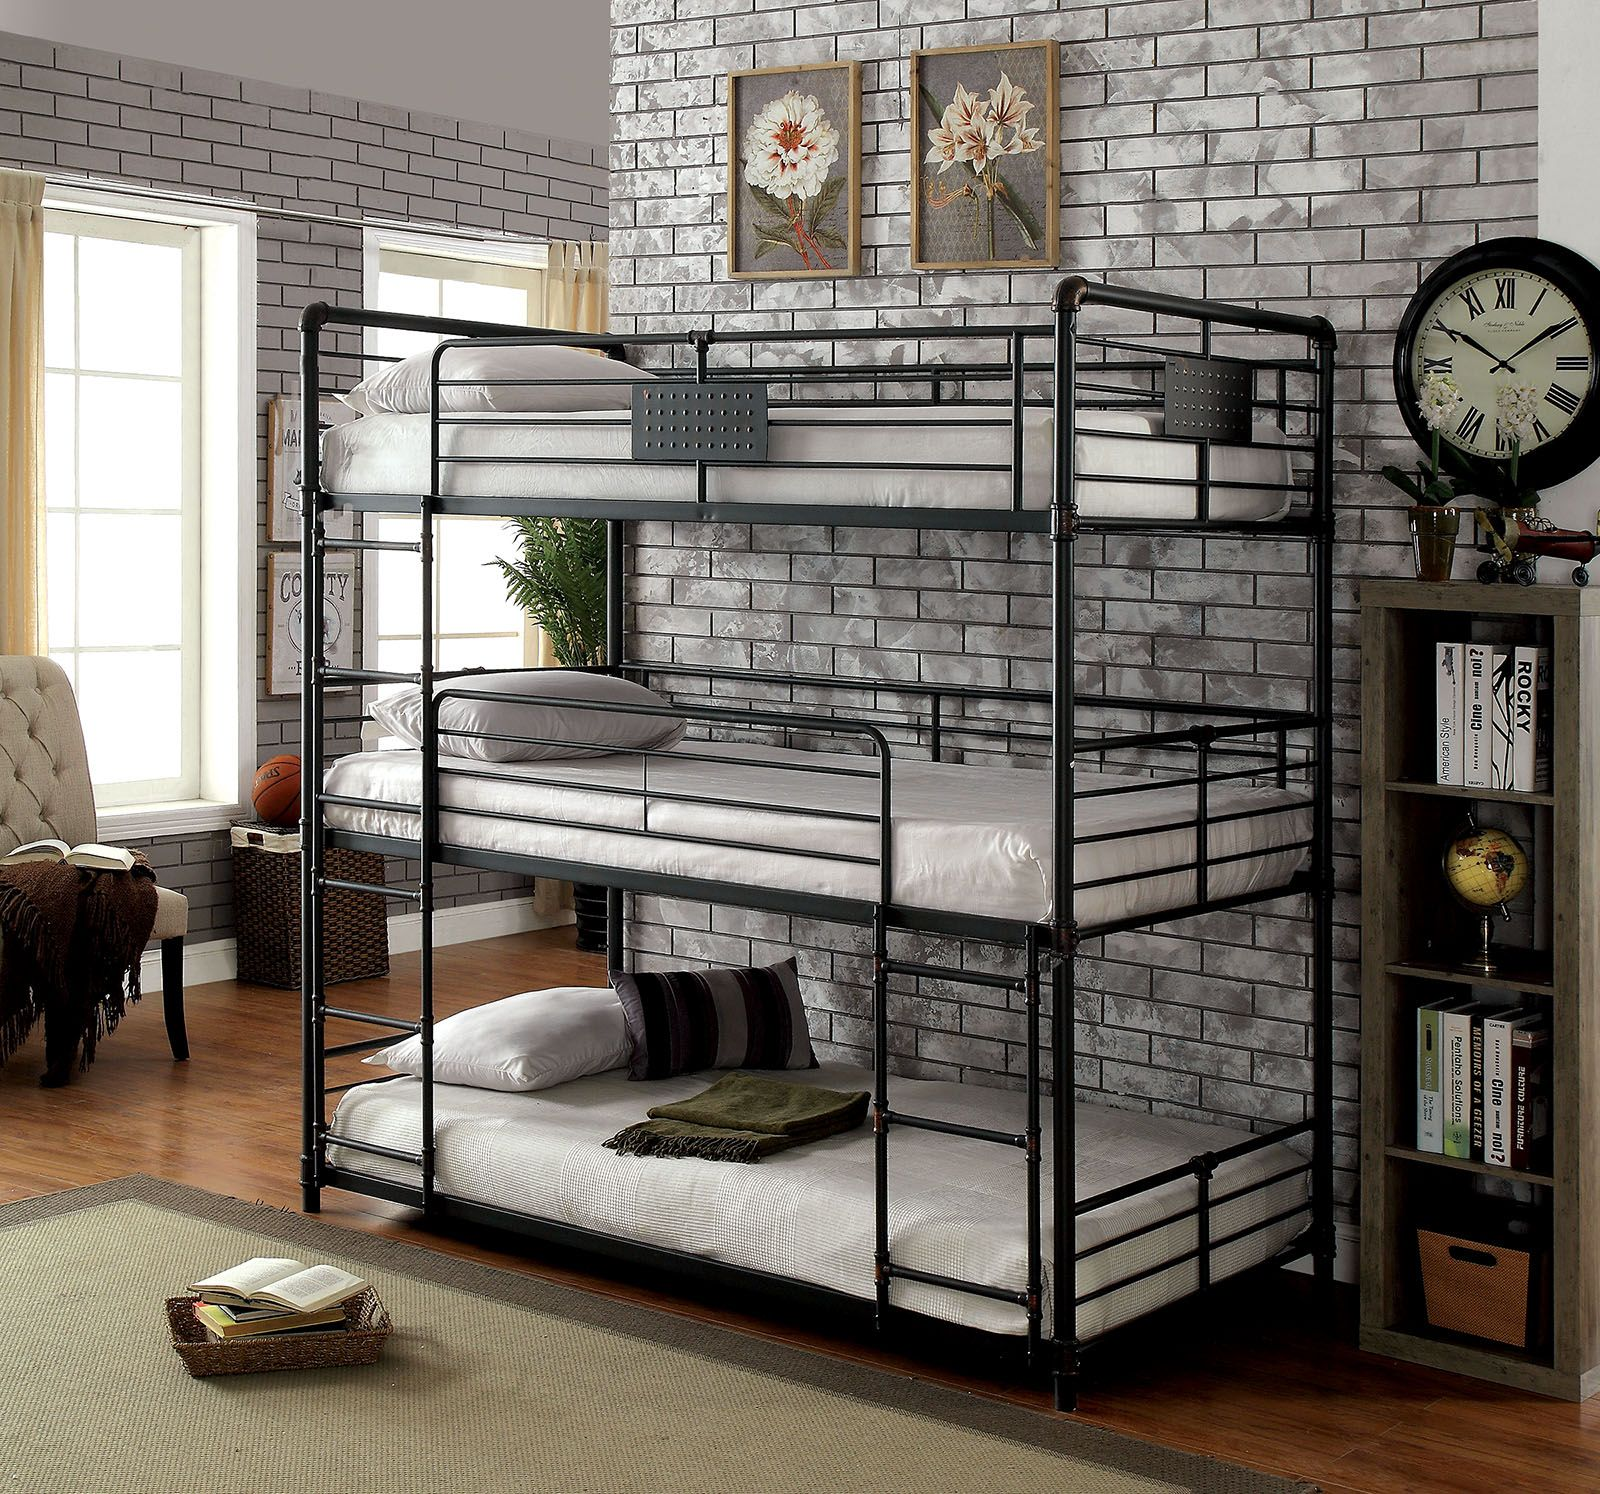 Pin On Industrial Piping Bunk Beds